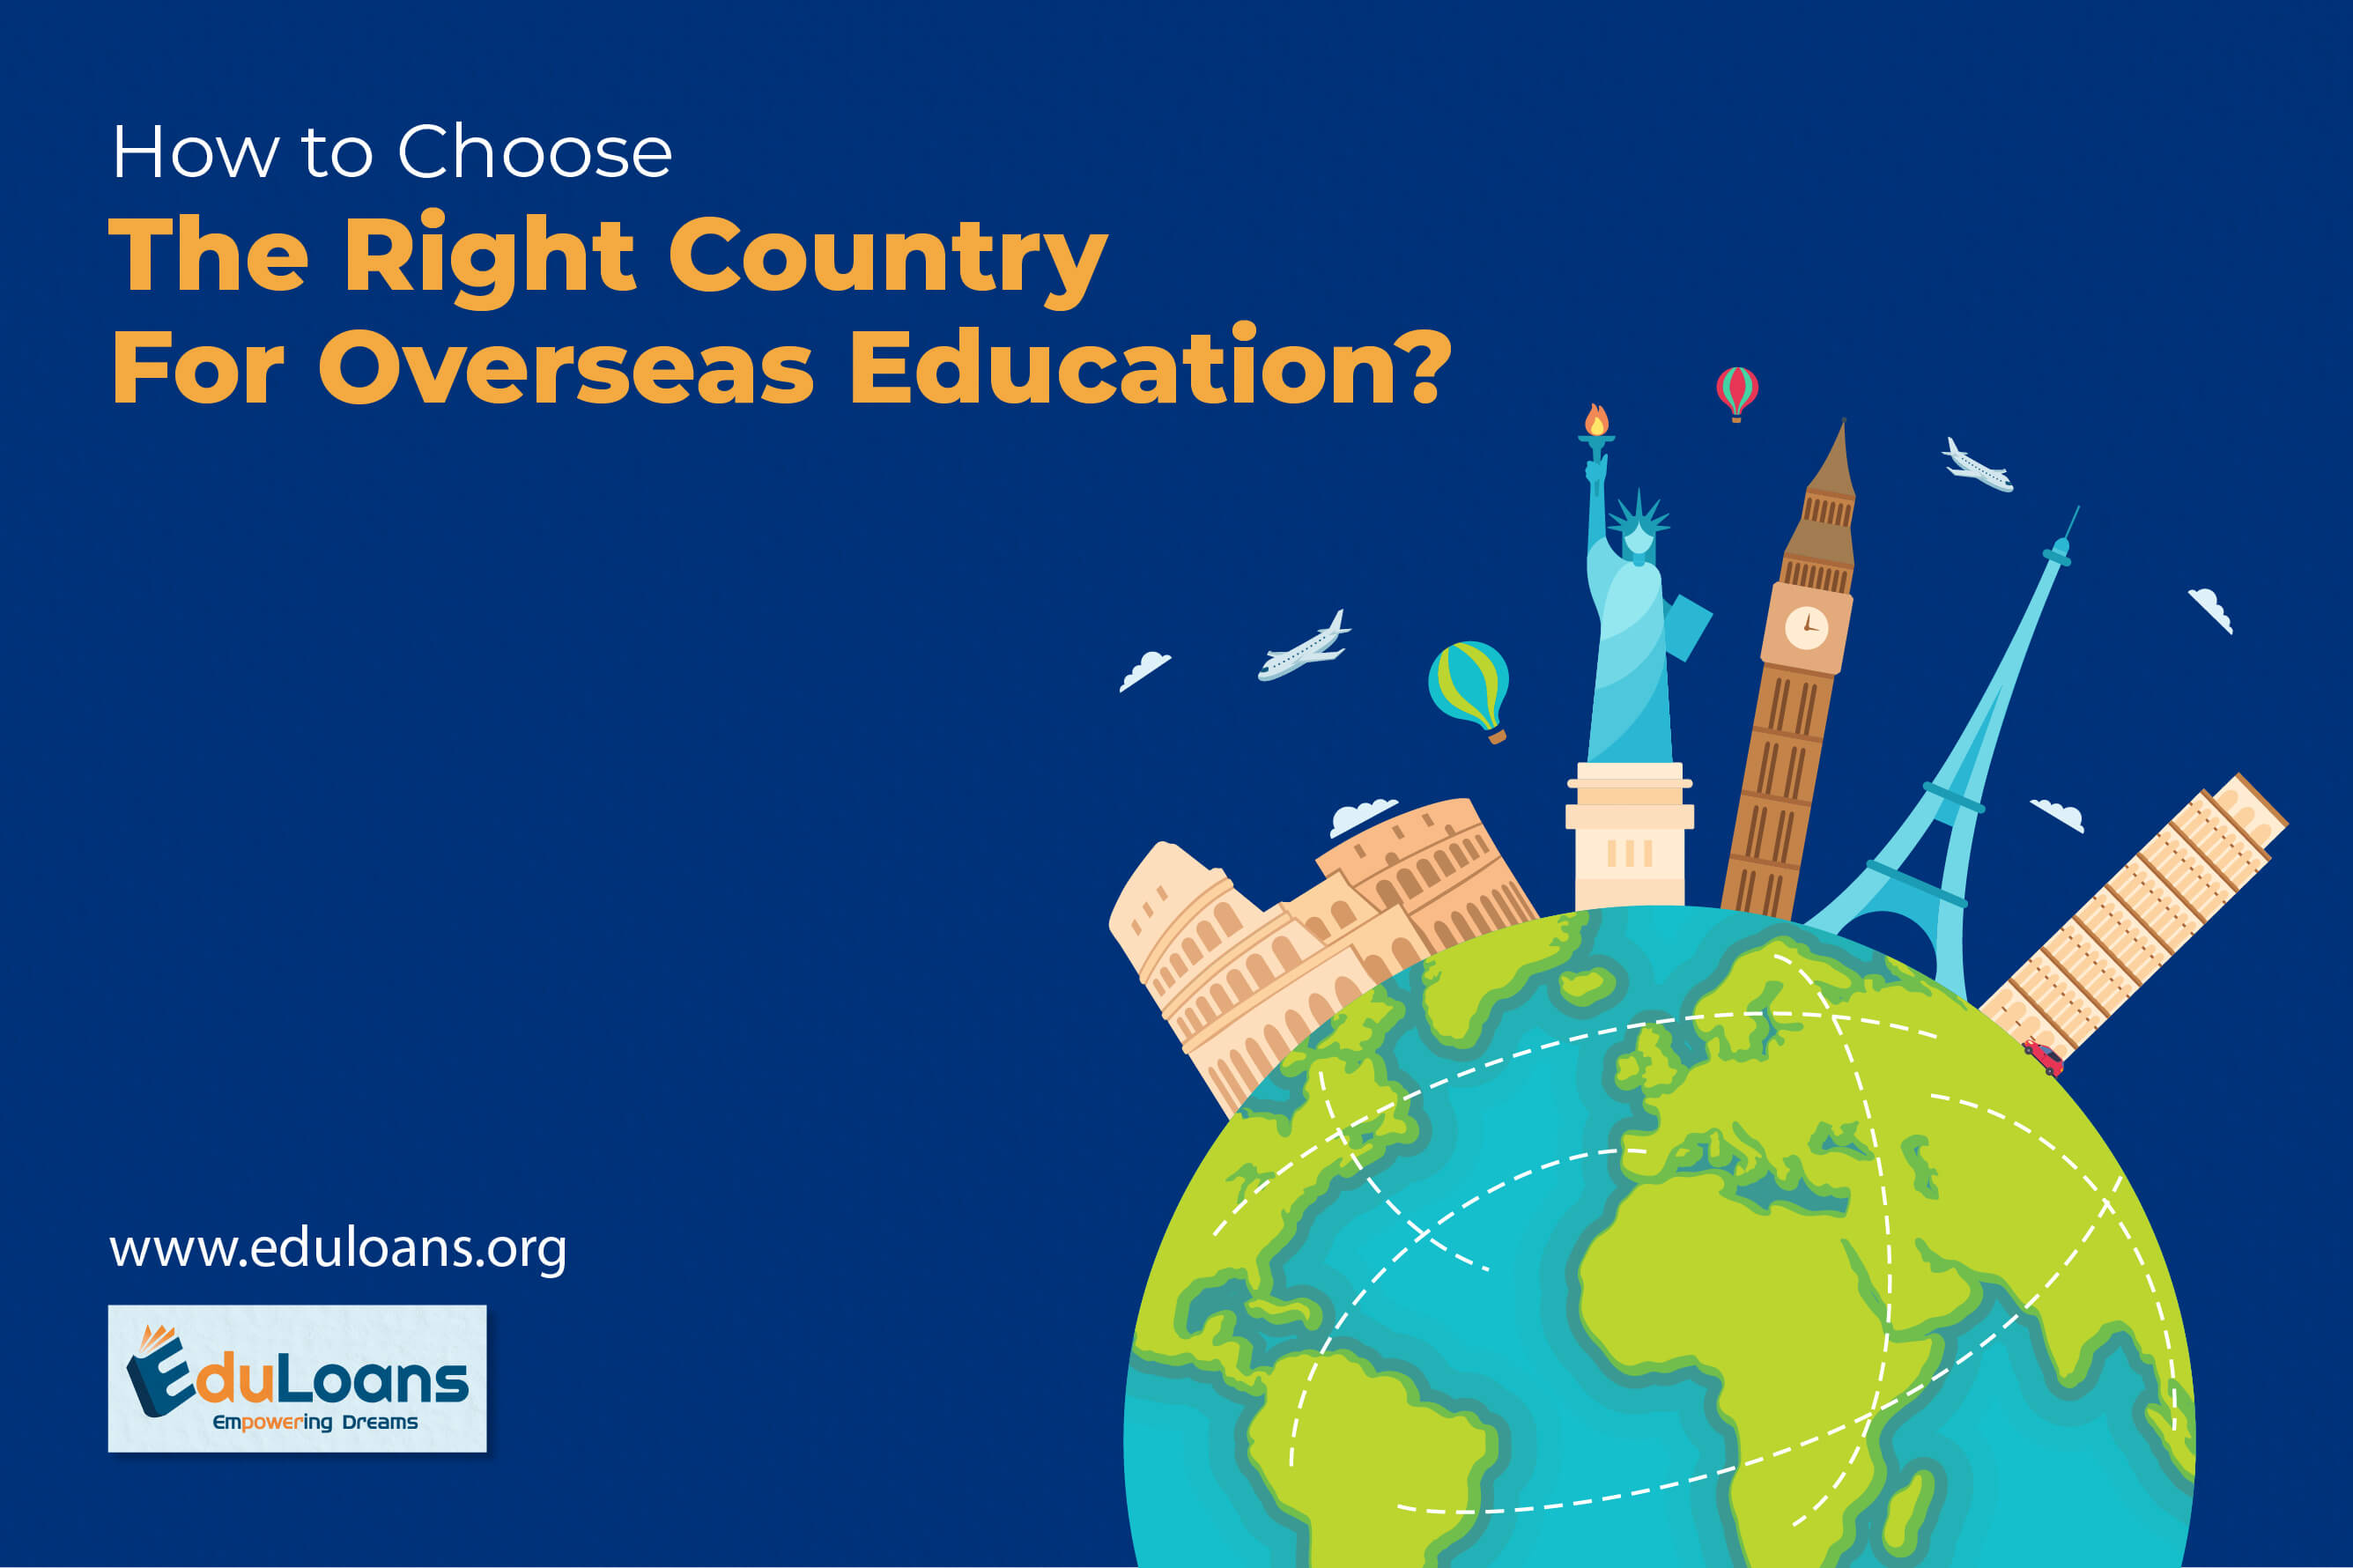 How to Choose the Right Country for Overseas Education?